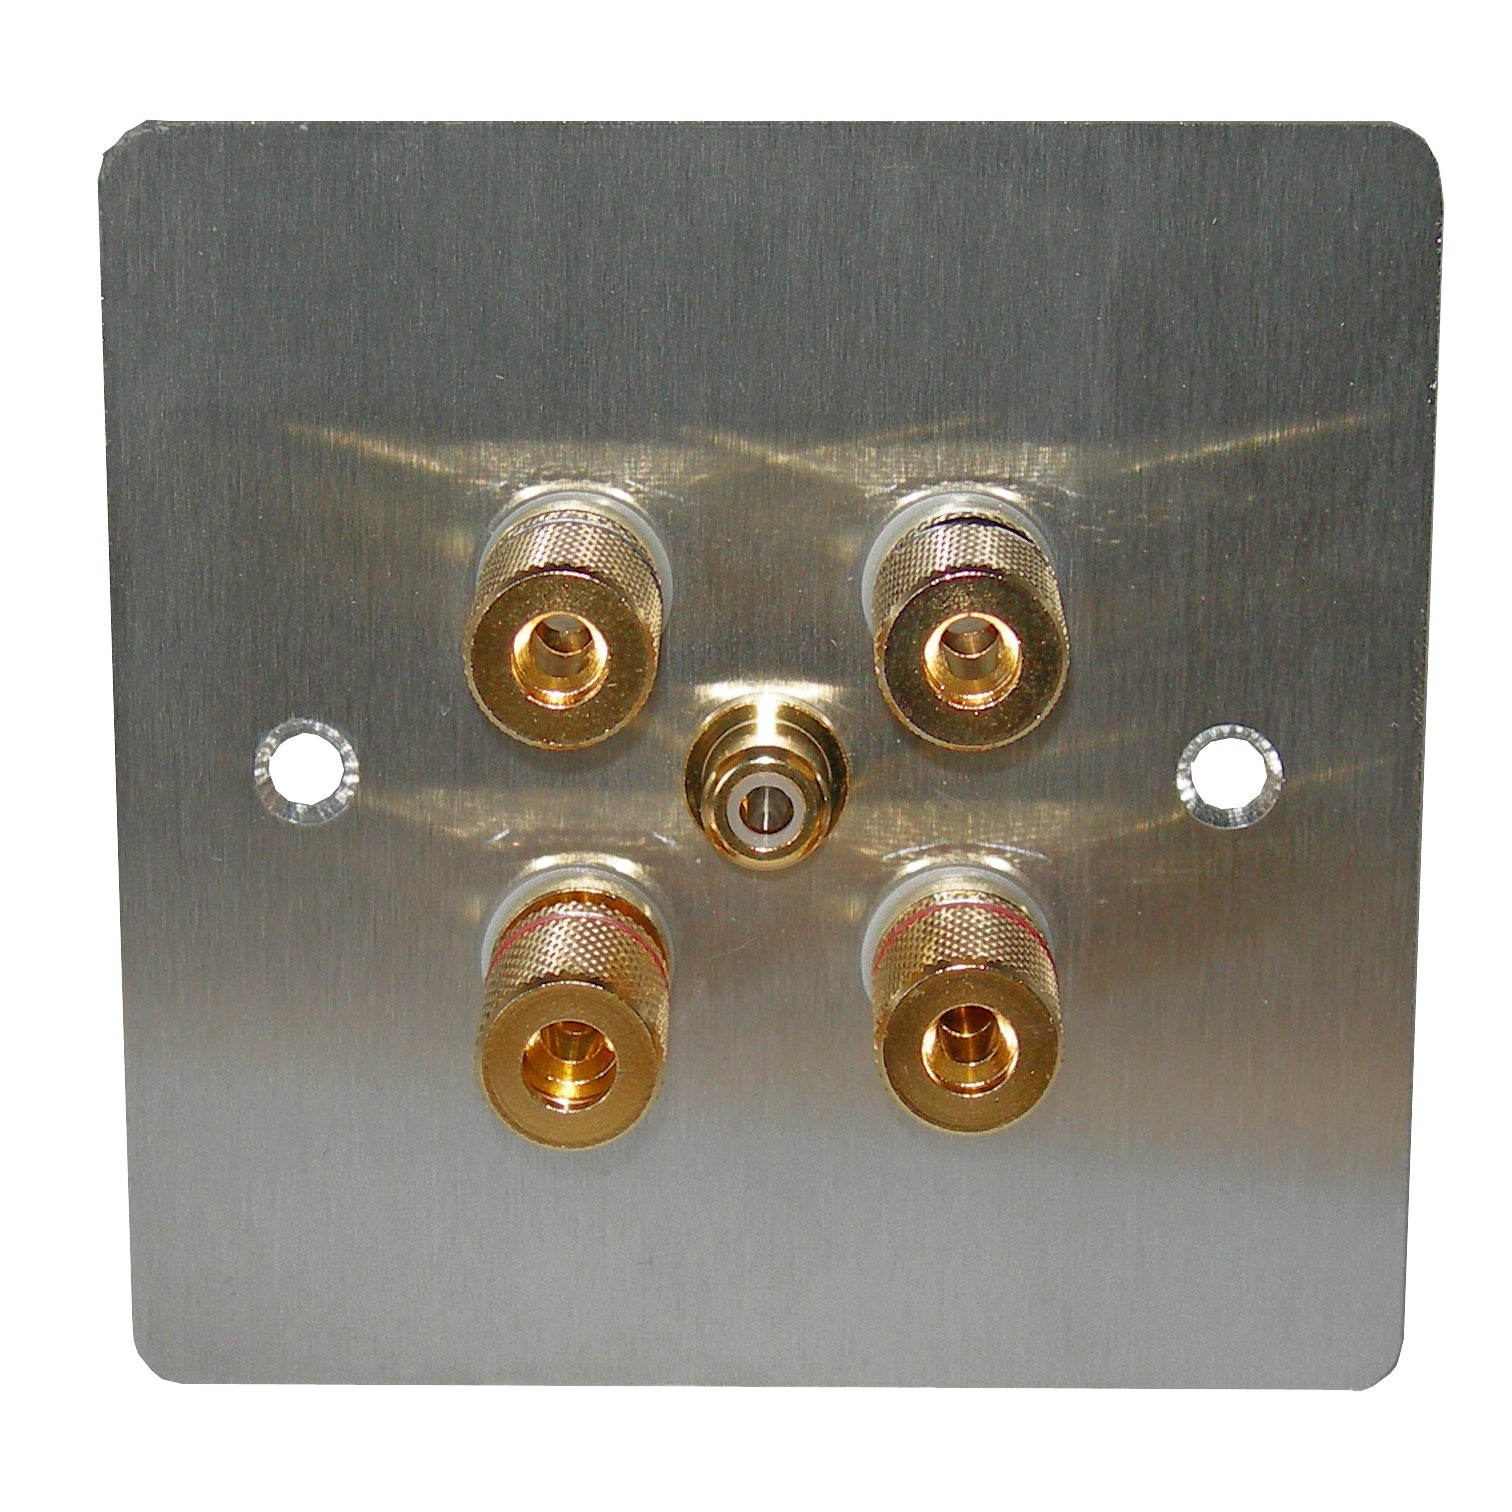 2.1 speaker plate steel with gold posts front